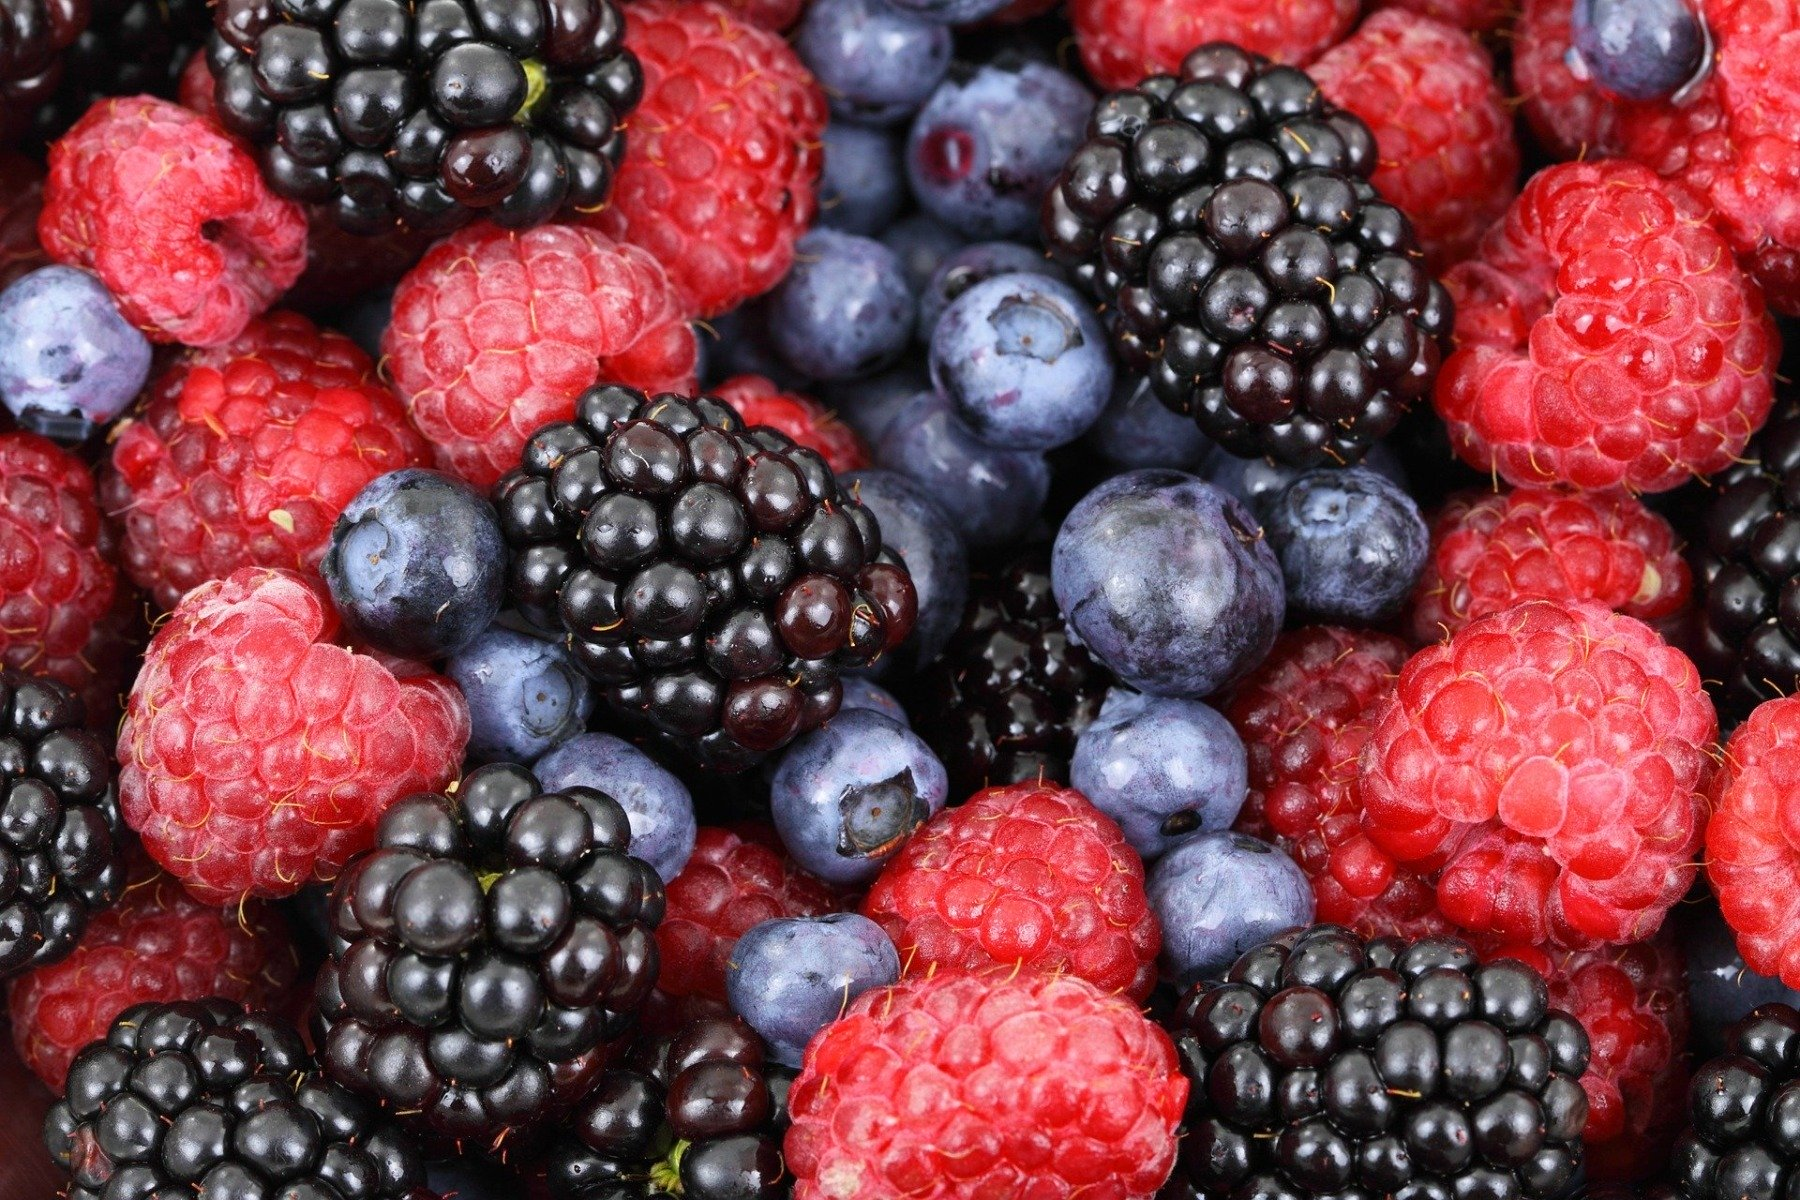 The best kinds of superfoods - berries